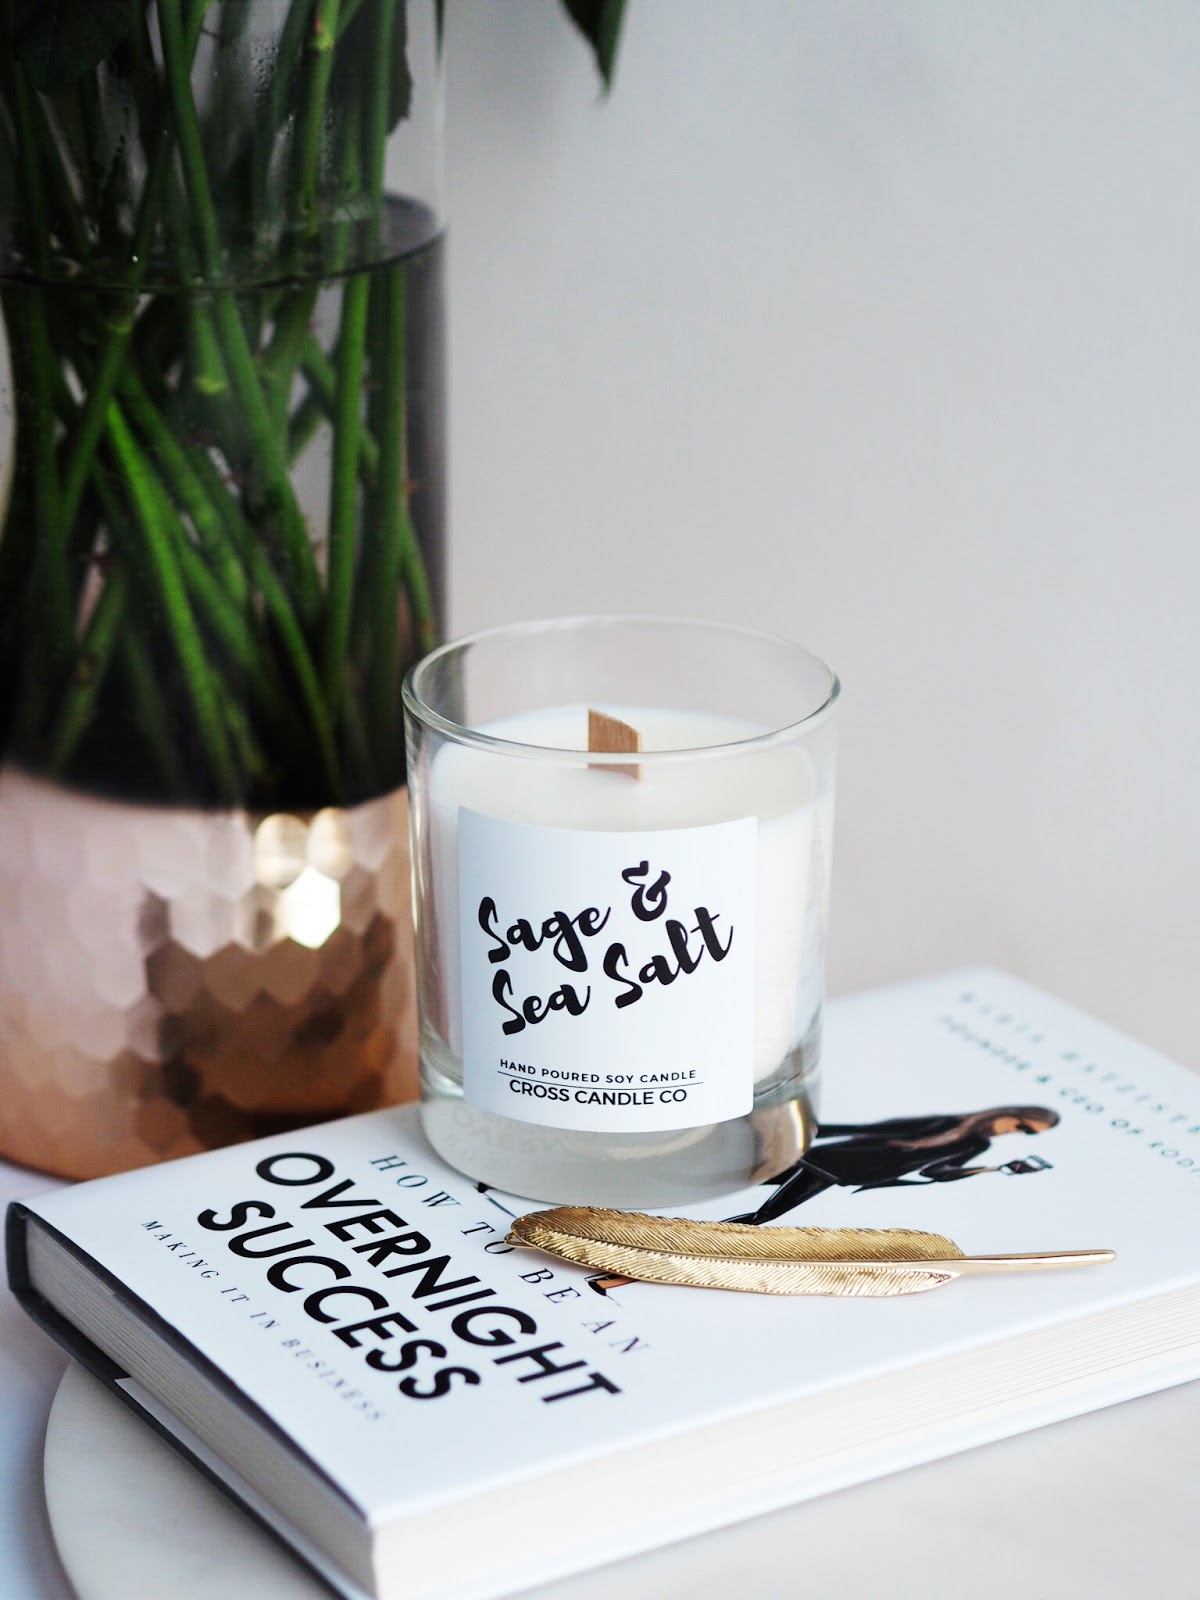 Lifestyle | A New Venture & Giveaway - Cross Candle Co